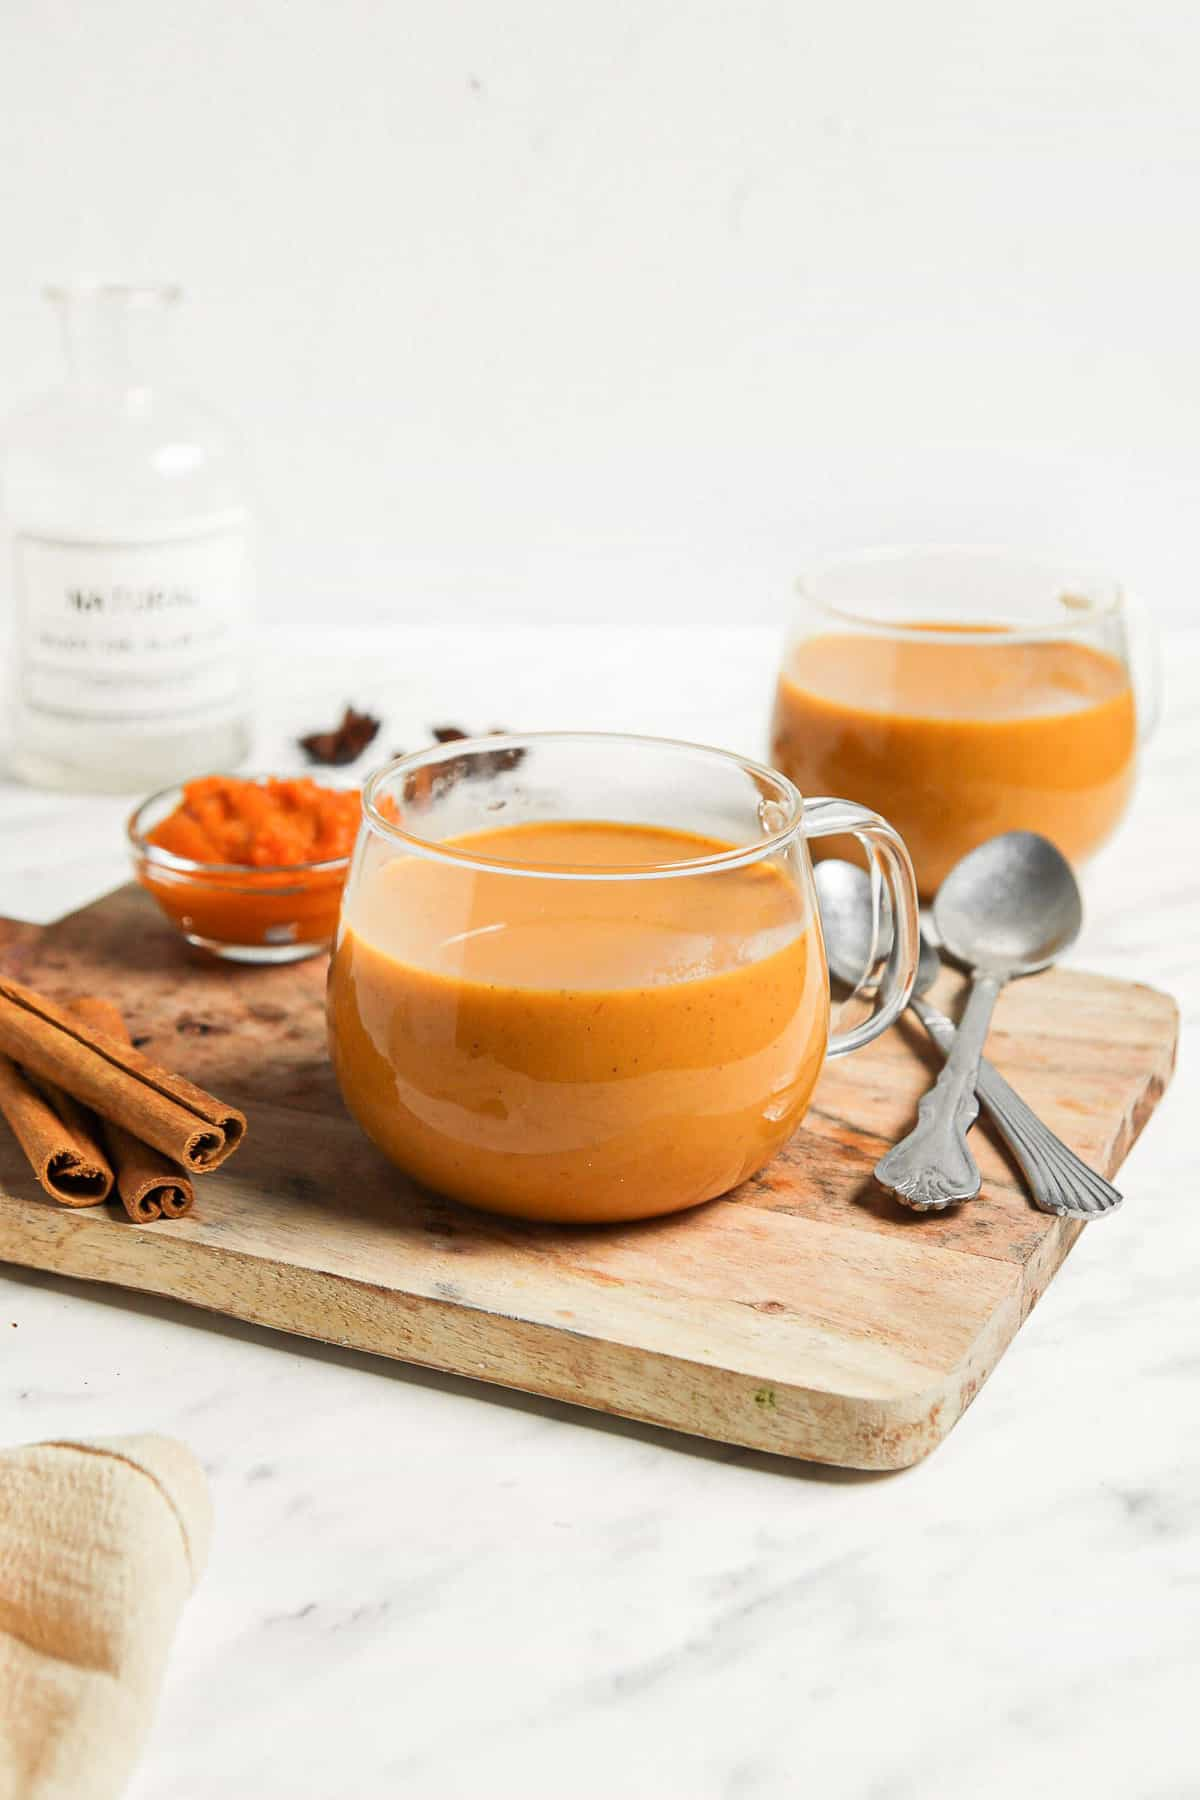 a clear glass coffee mug, filled with a homemade pumpkin spice latte